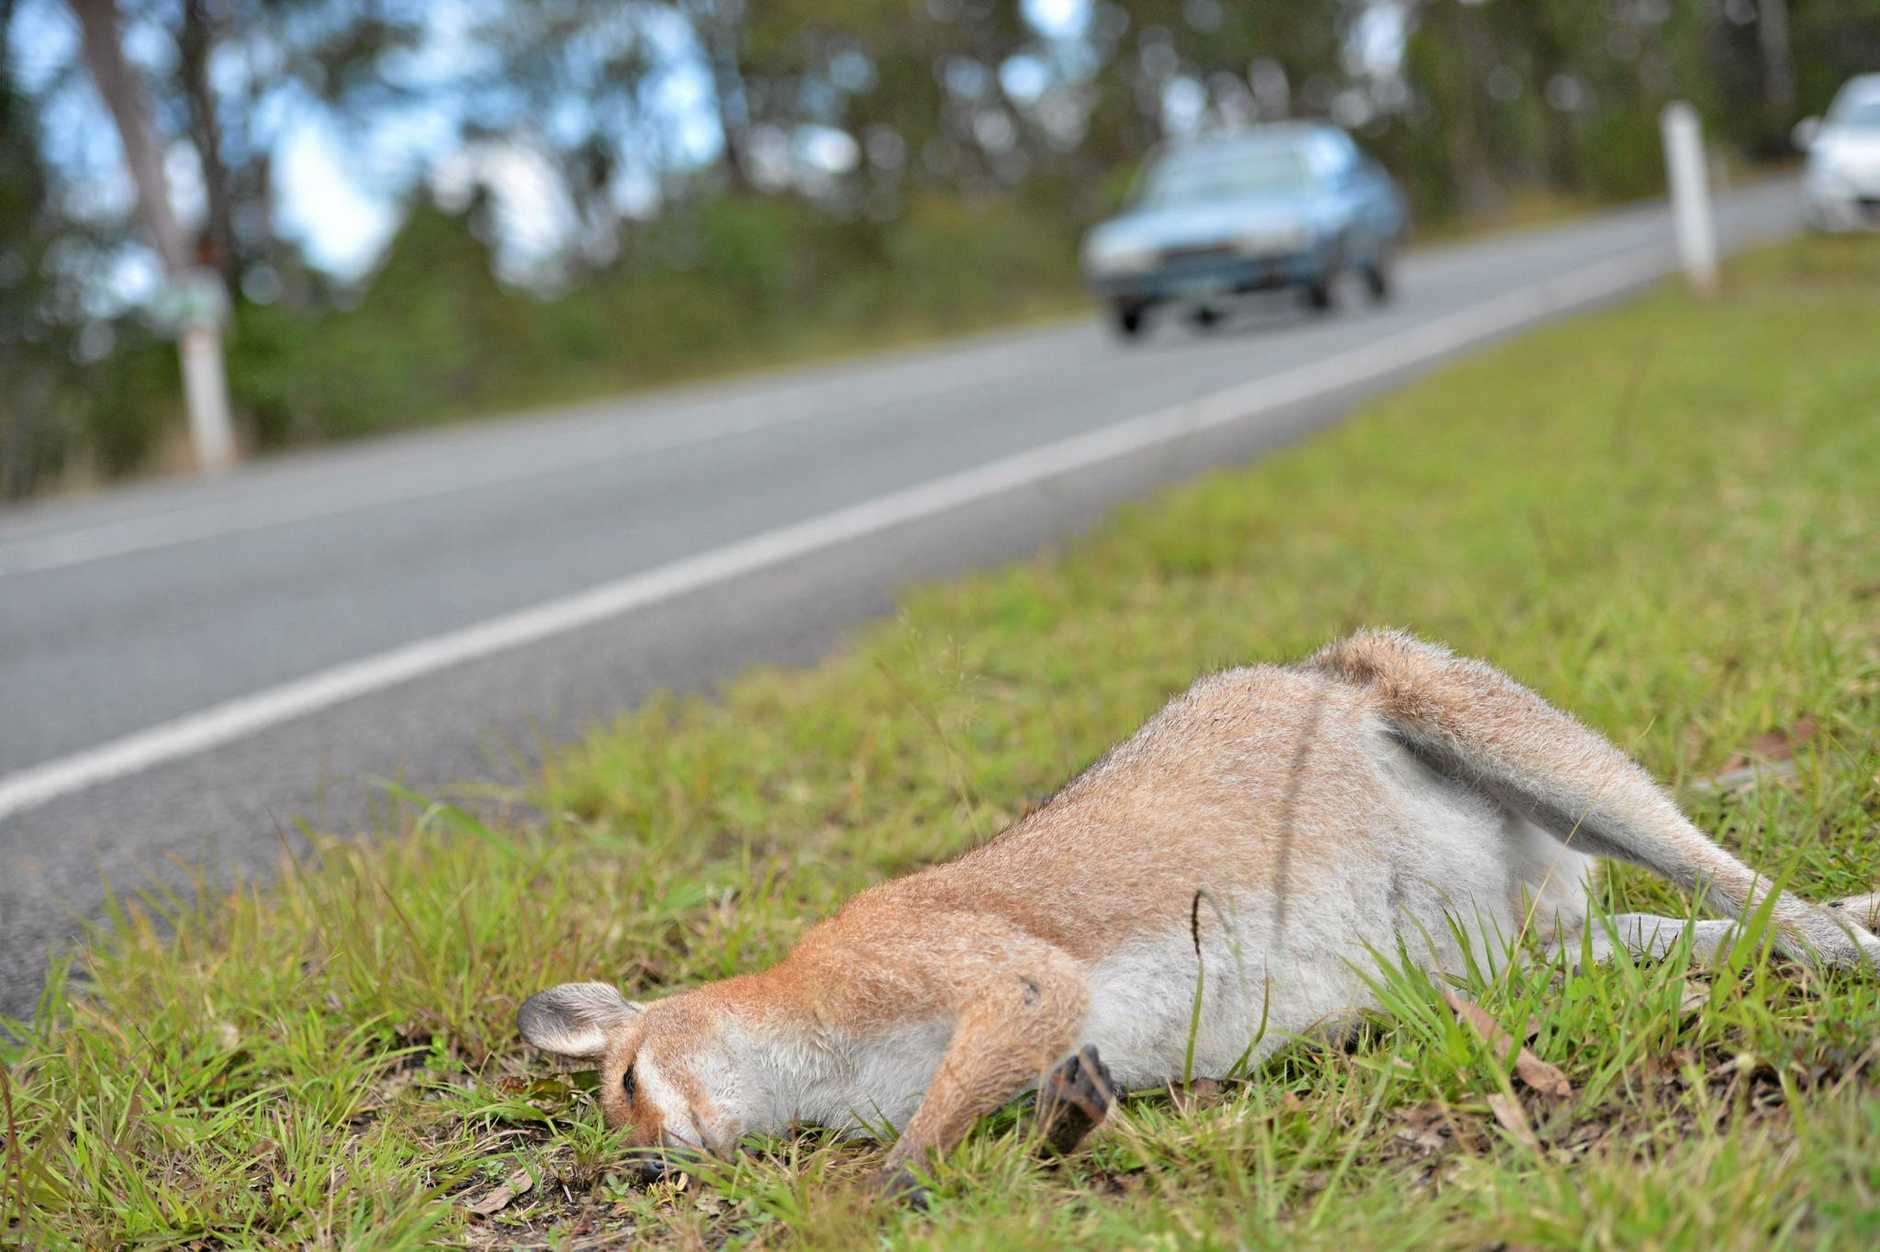 KILLING SEASON: More wild animals are killed or injured on the roads at this time of year.